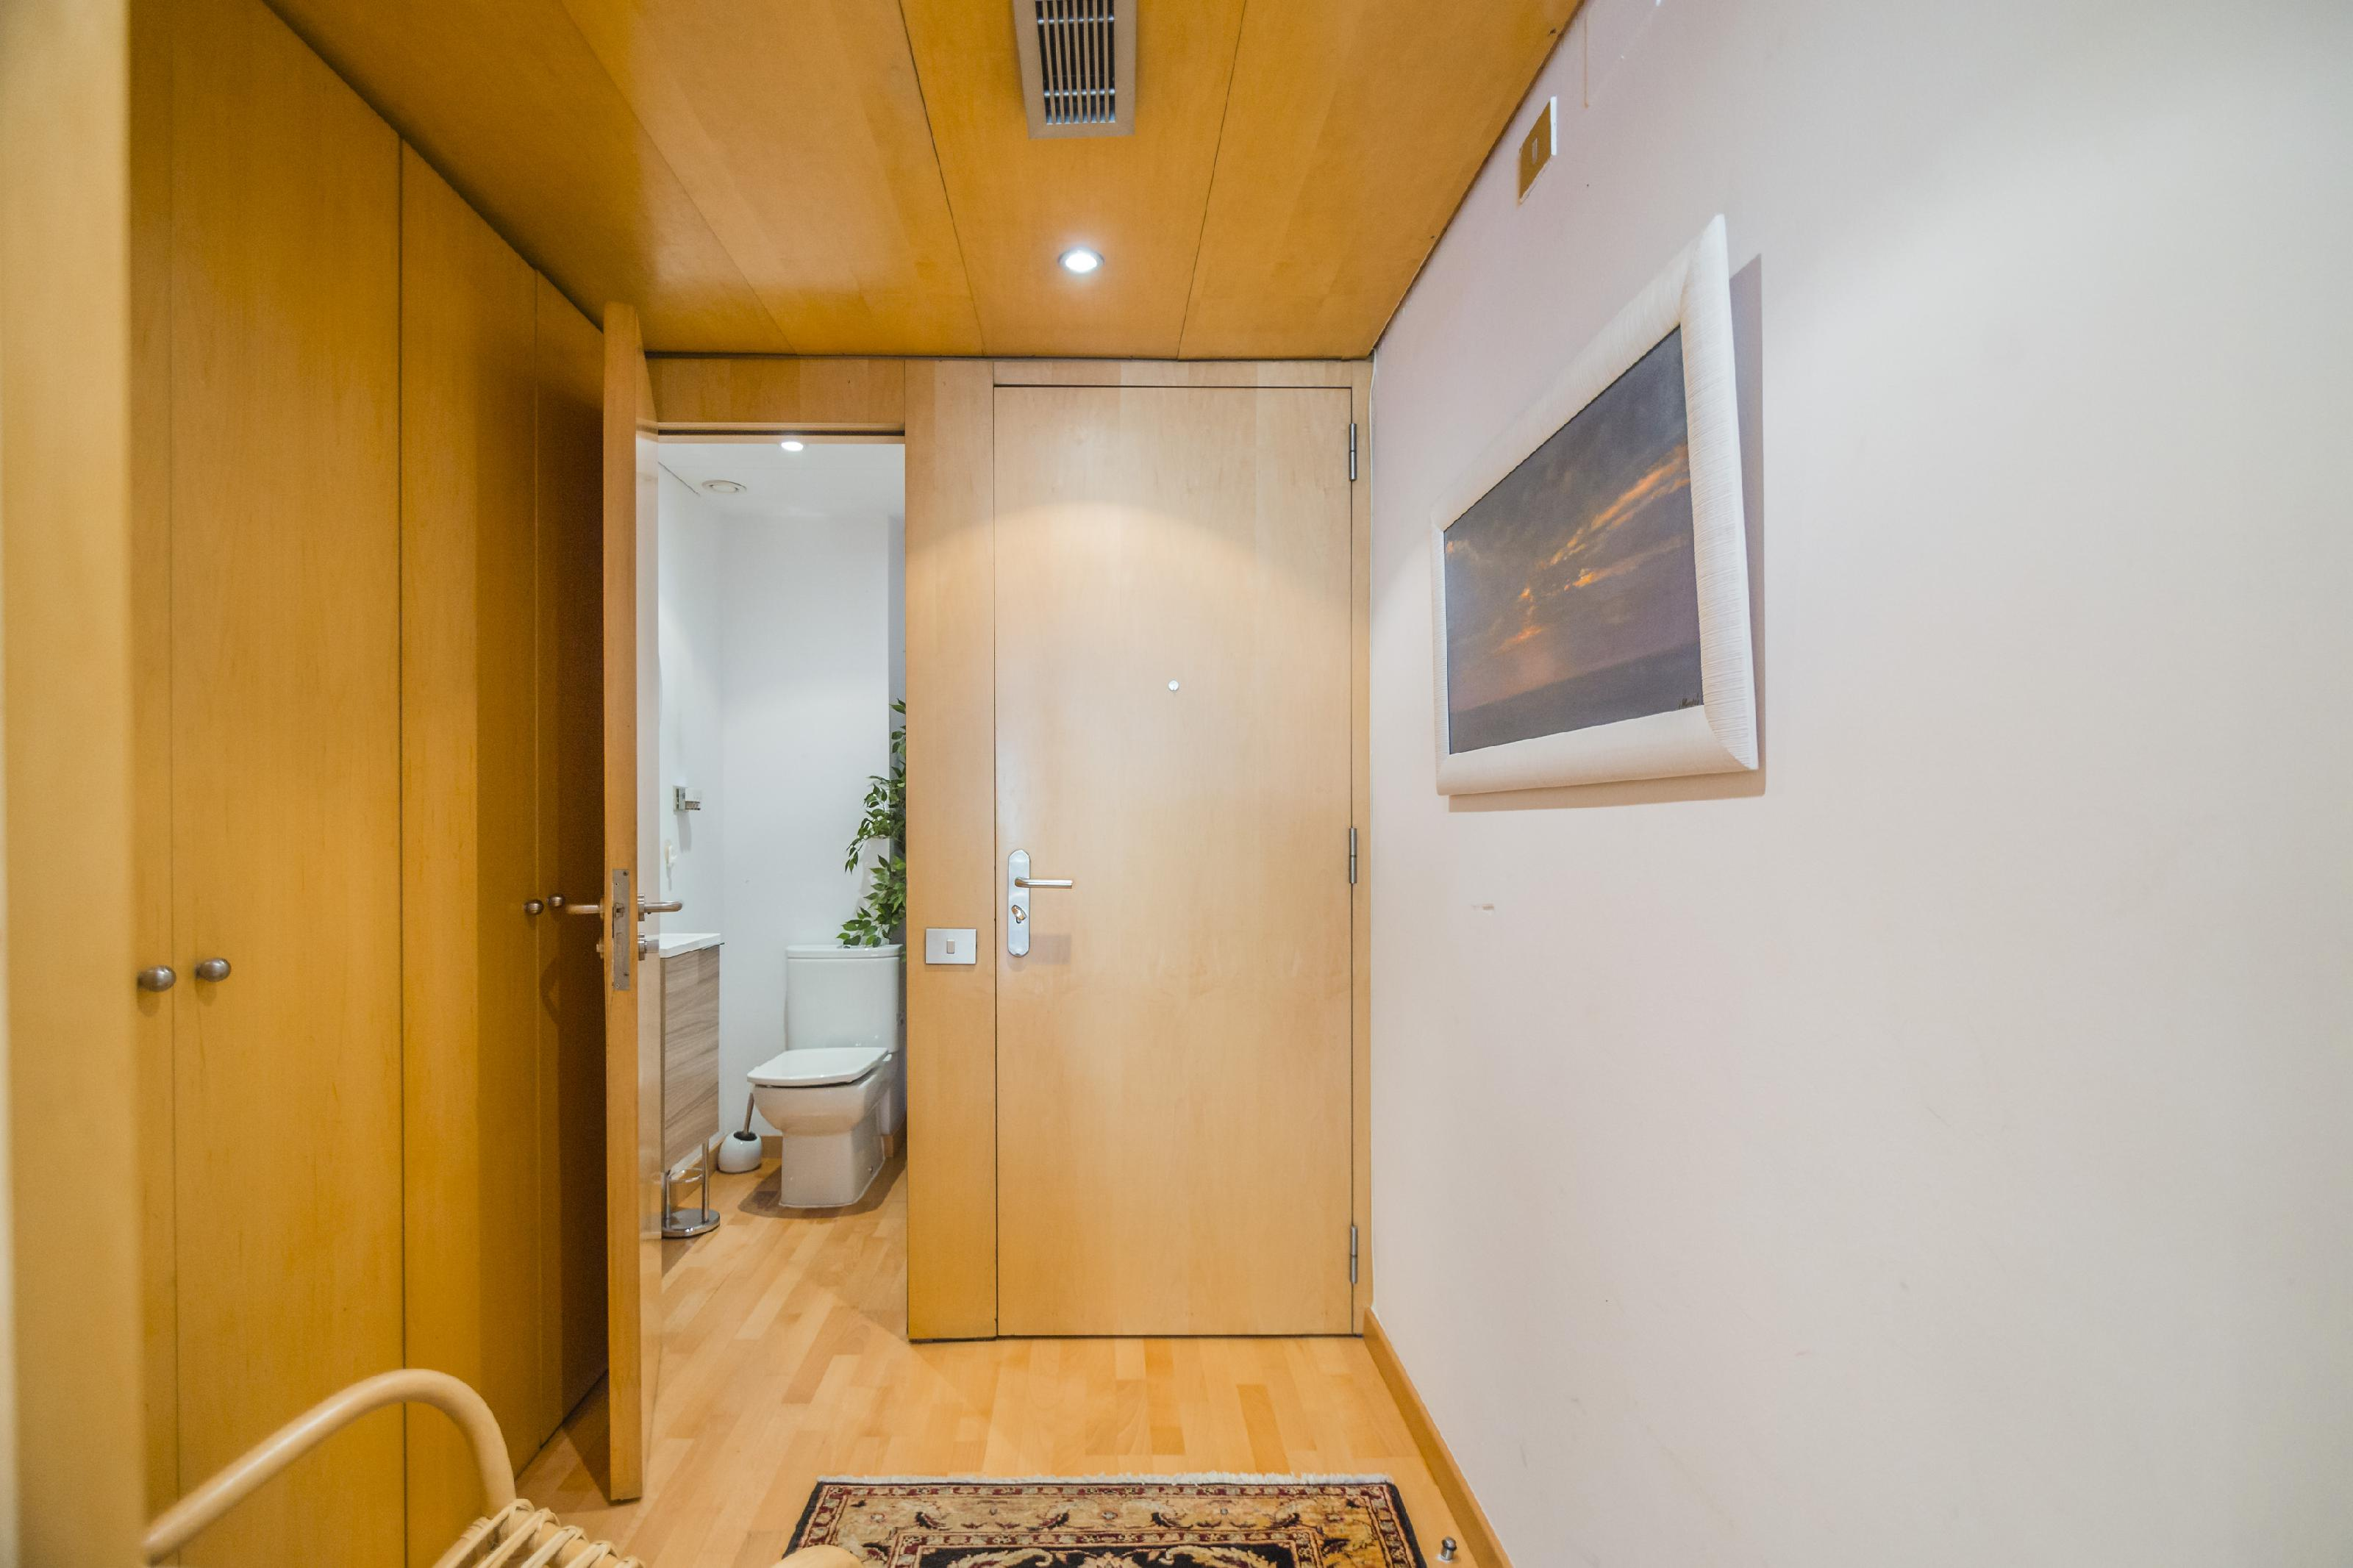 109651 Apartment for sale in Eixample, Dreta Eixample 7